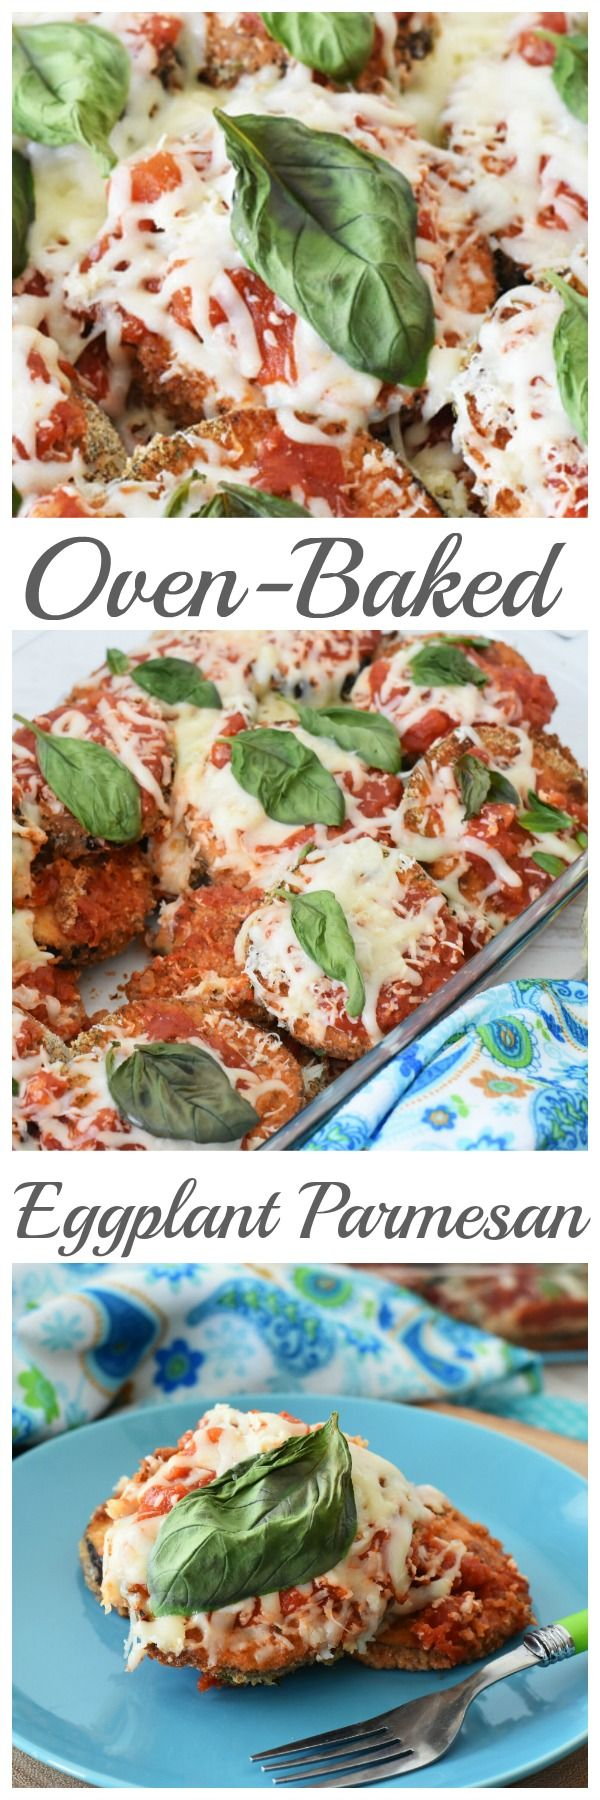 Make this flavorful Oven Baked Eggplant Parmesan for dinner. Your family will love the recipe, and you'll love how easy clean up is afterwards.